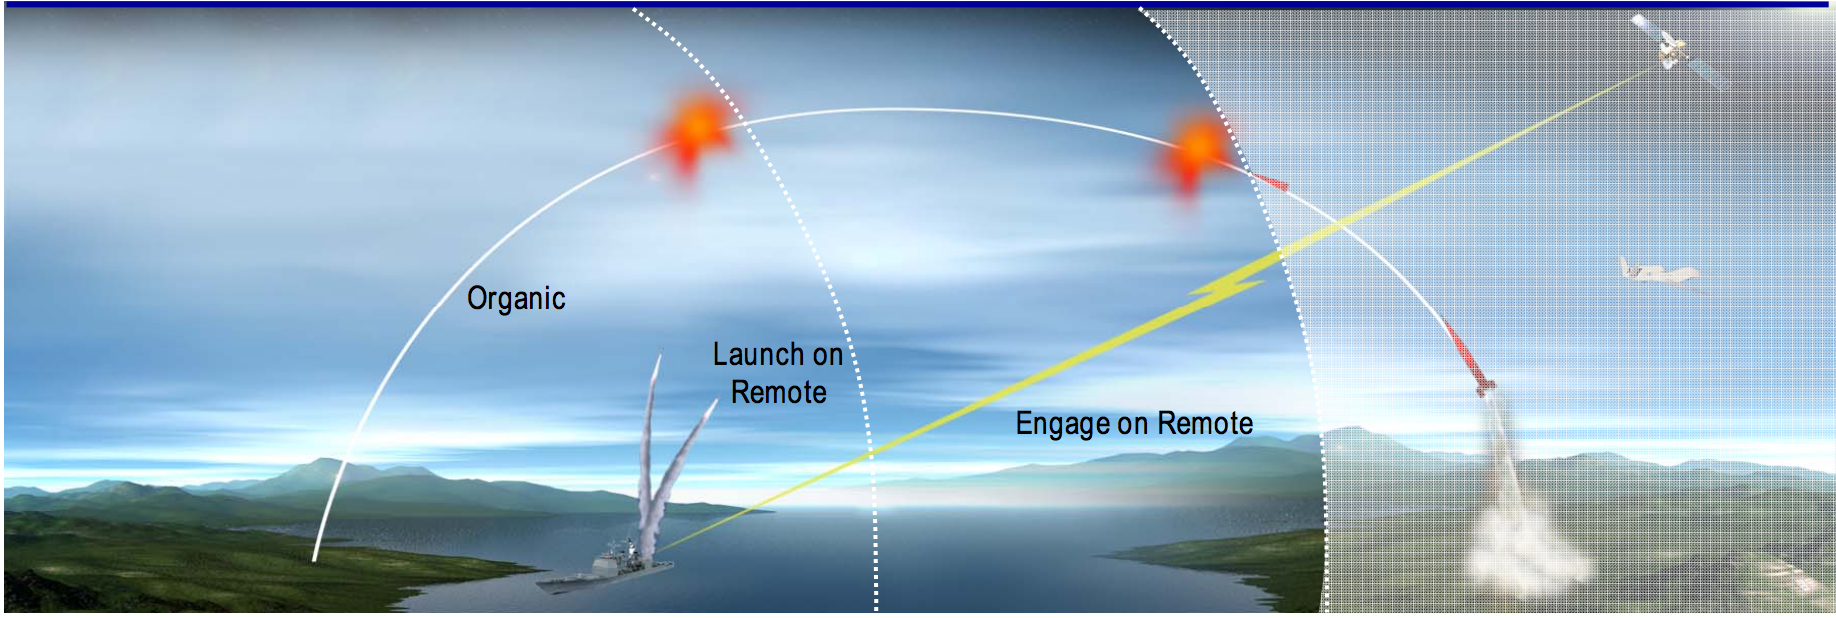 The engage-on-remote BMD concept. MDA Image